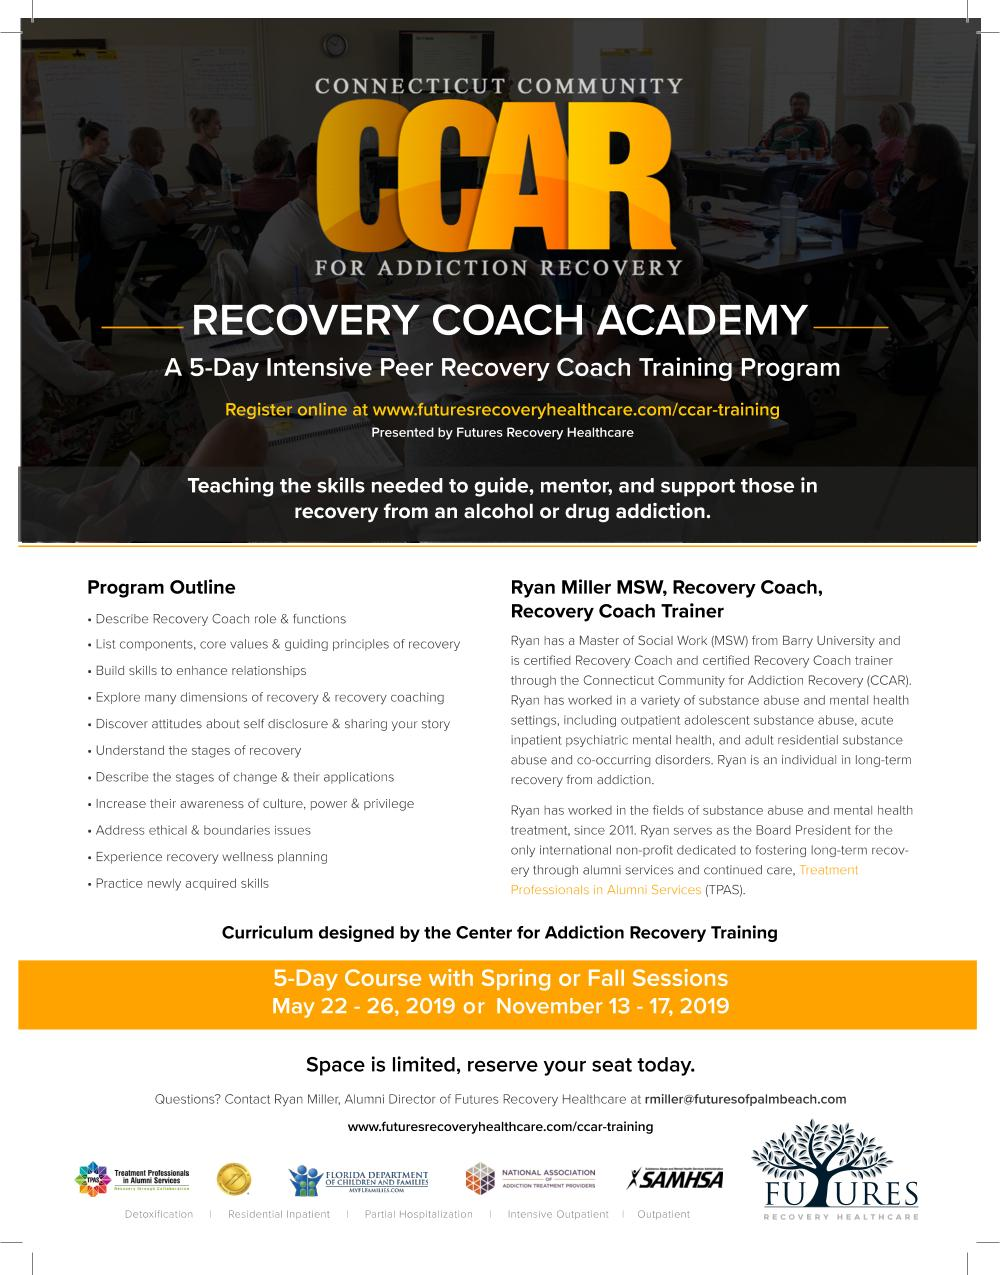 Ccar Recovery Coach Training National Association Of